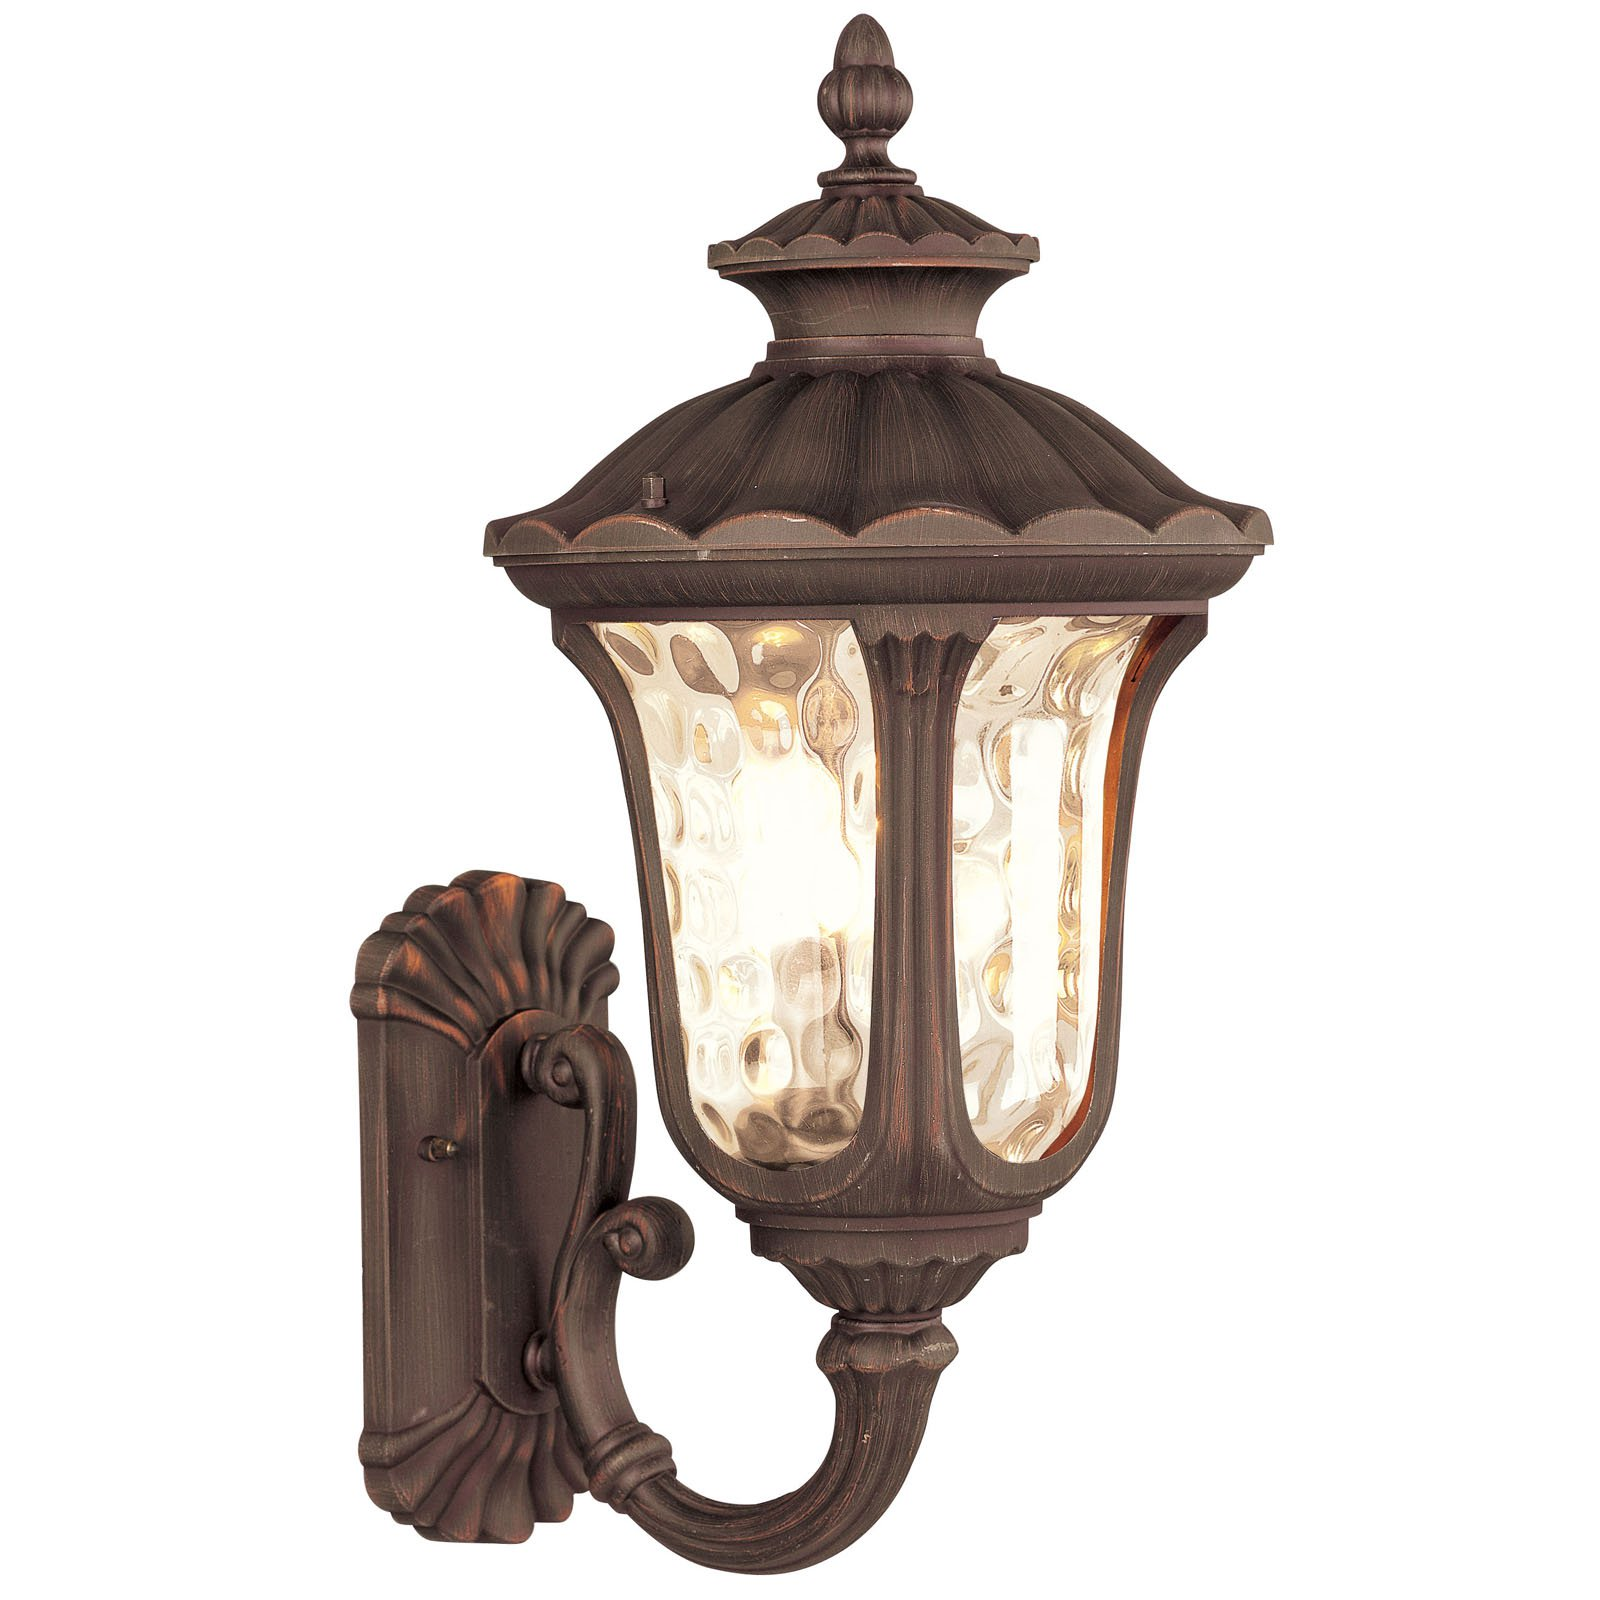 Livex Oxford 765 Outdoor Uplight Wall Lantern - Imperial Bronze